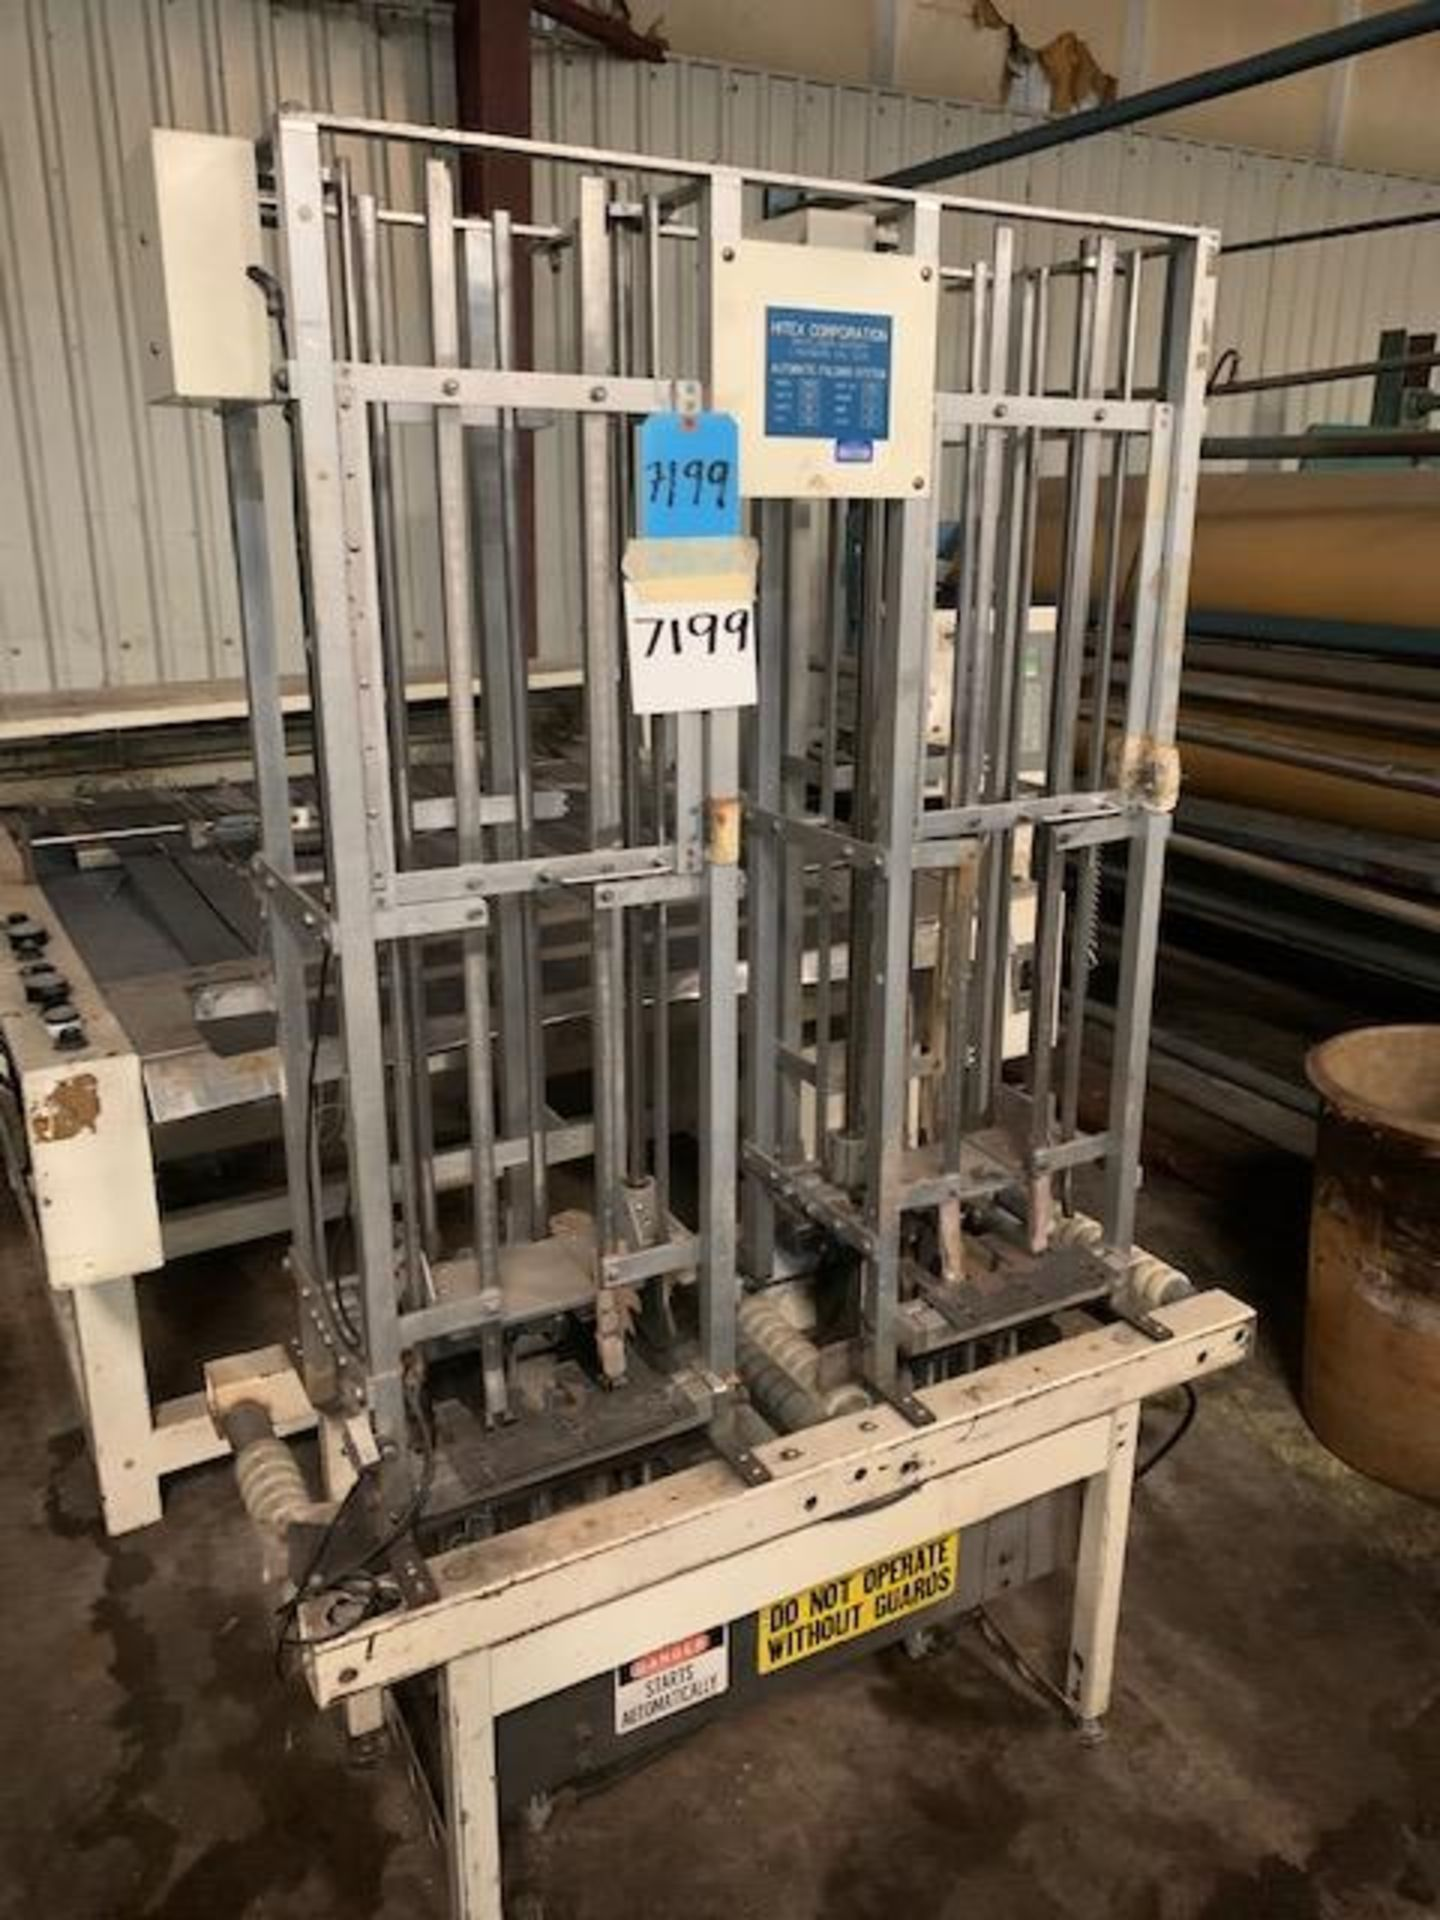 Lot 21135 - Hiltex Automatic Folding System. Model 45122. Serial 1032. Volts 220 60HZ, Rigging Fee: $100